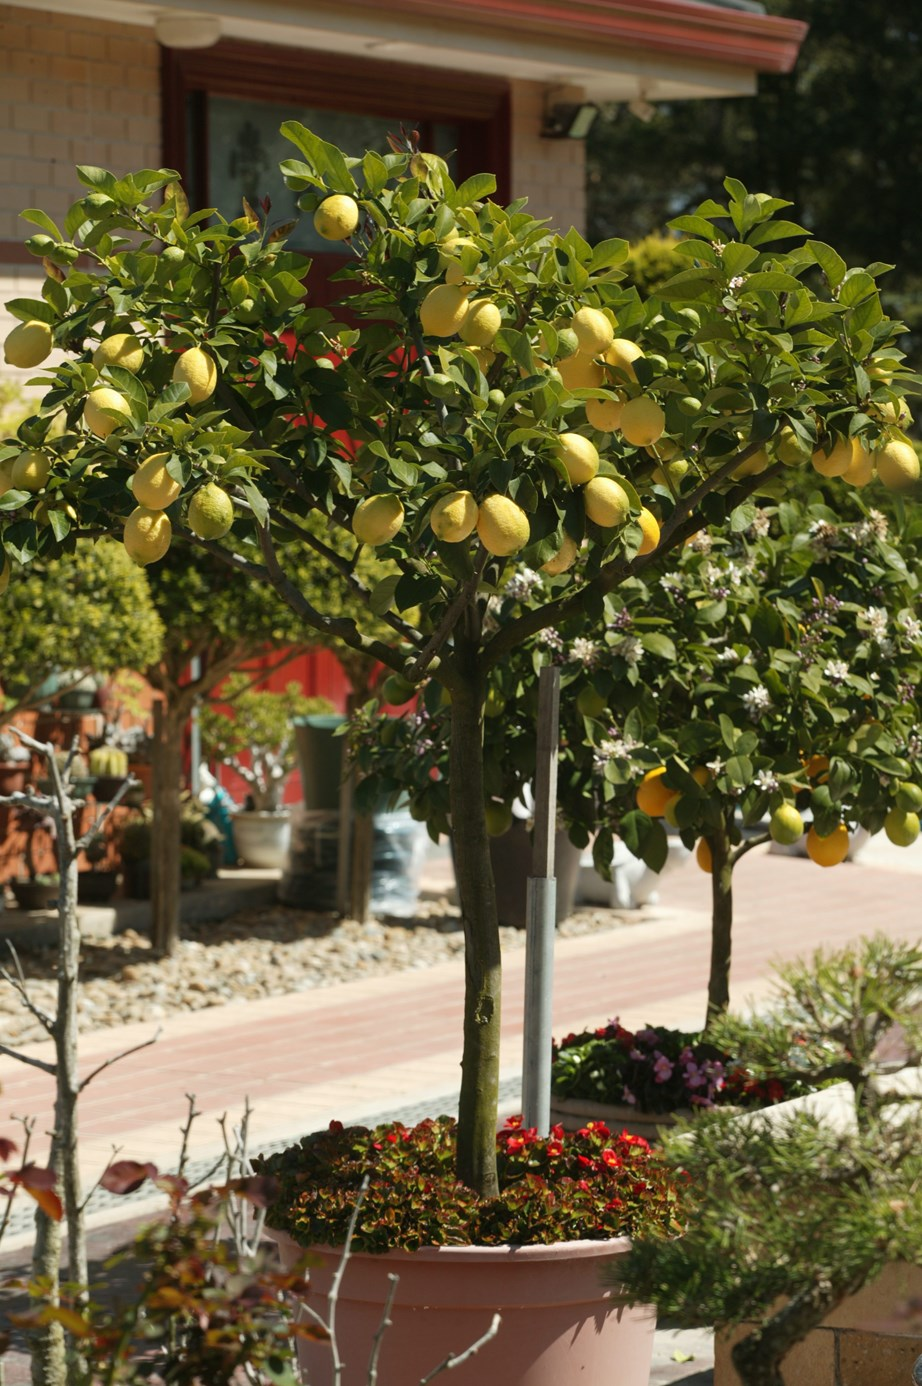 Citrus trees are sunseekers so be sure to move them to where they can basks in the rays.